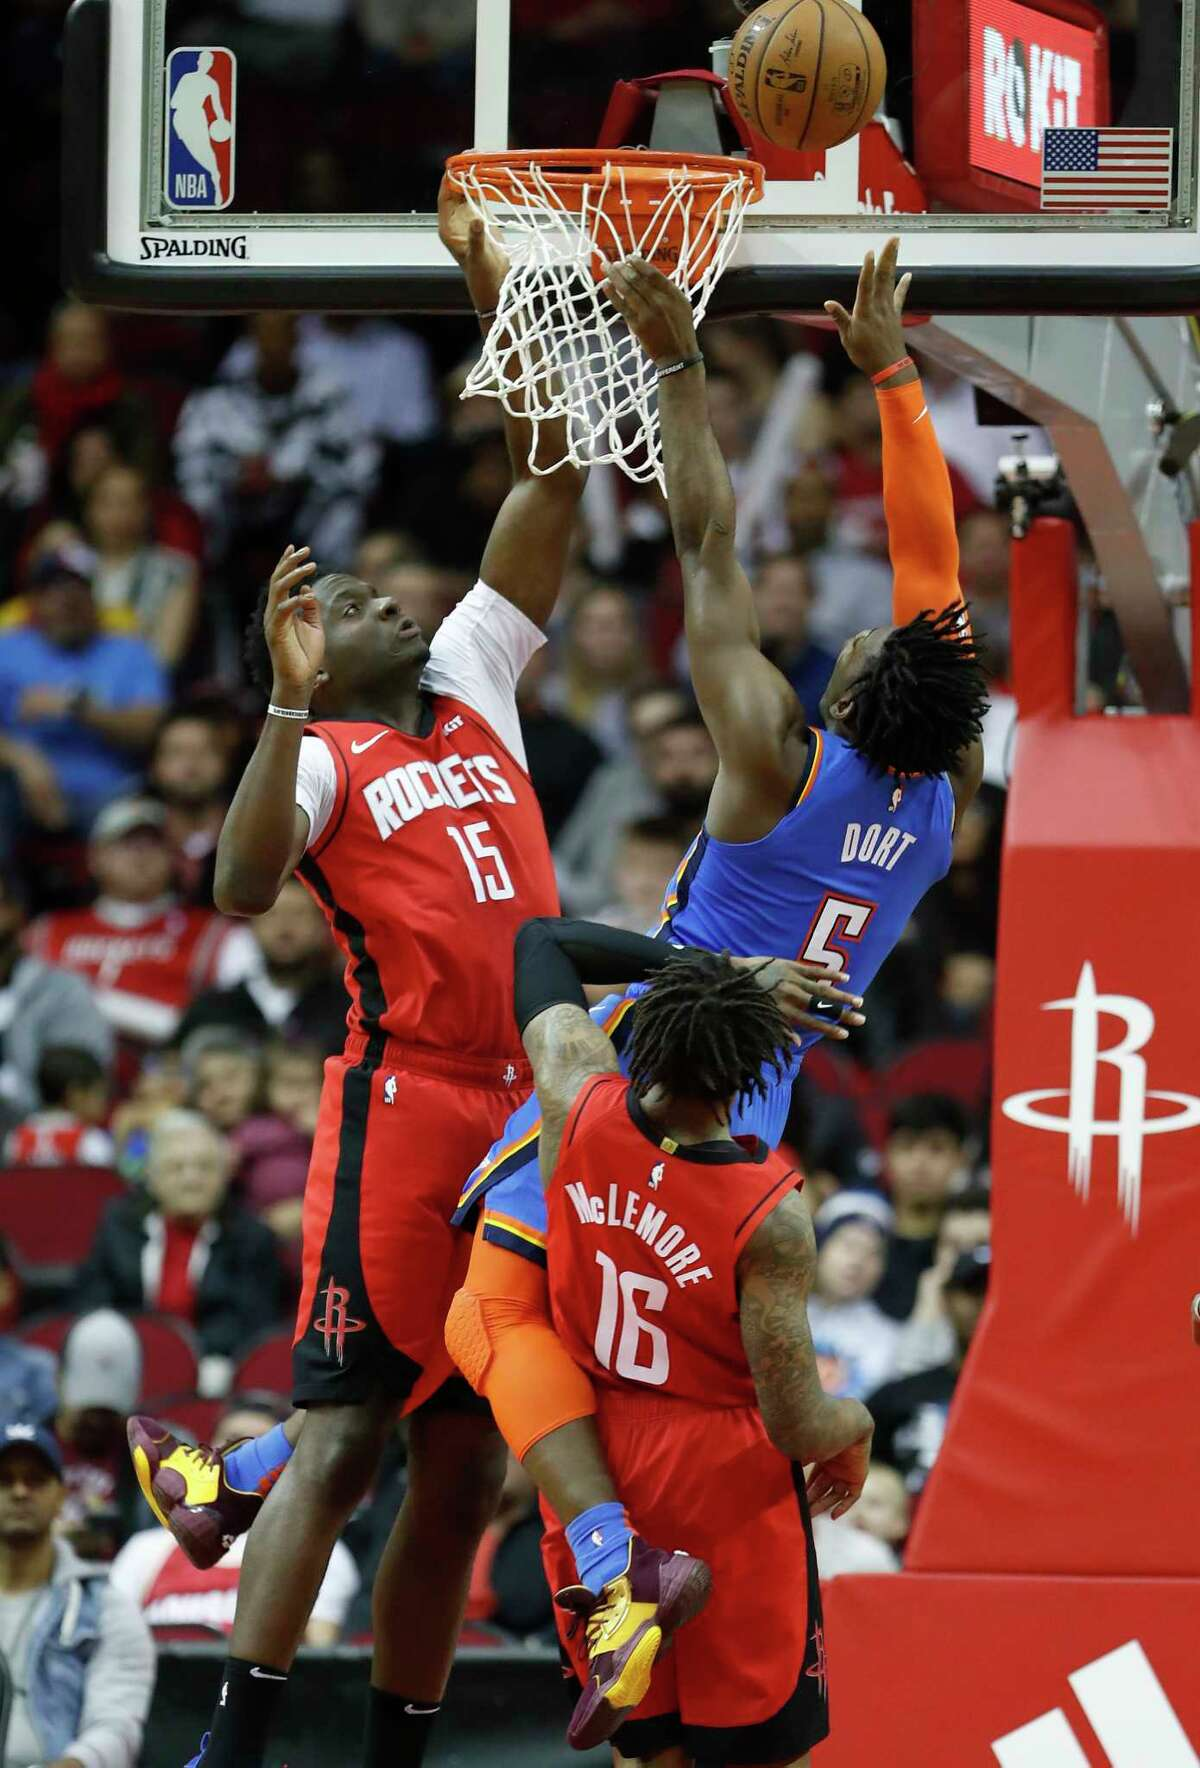 Oklahoma City Thunder guard Luguentz Dort (5) and Houston Rockets center Clint Capela (15) and guard Ben McLemore (16) under the basket during the first half of an MBA basketball game at Toyota Center, in Houston, Monday, Jan. 20, 2020.